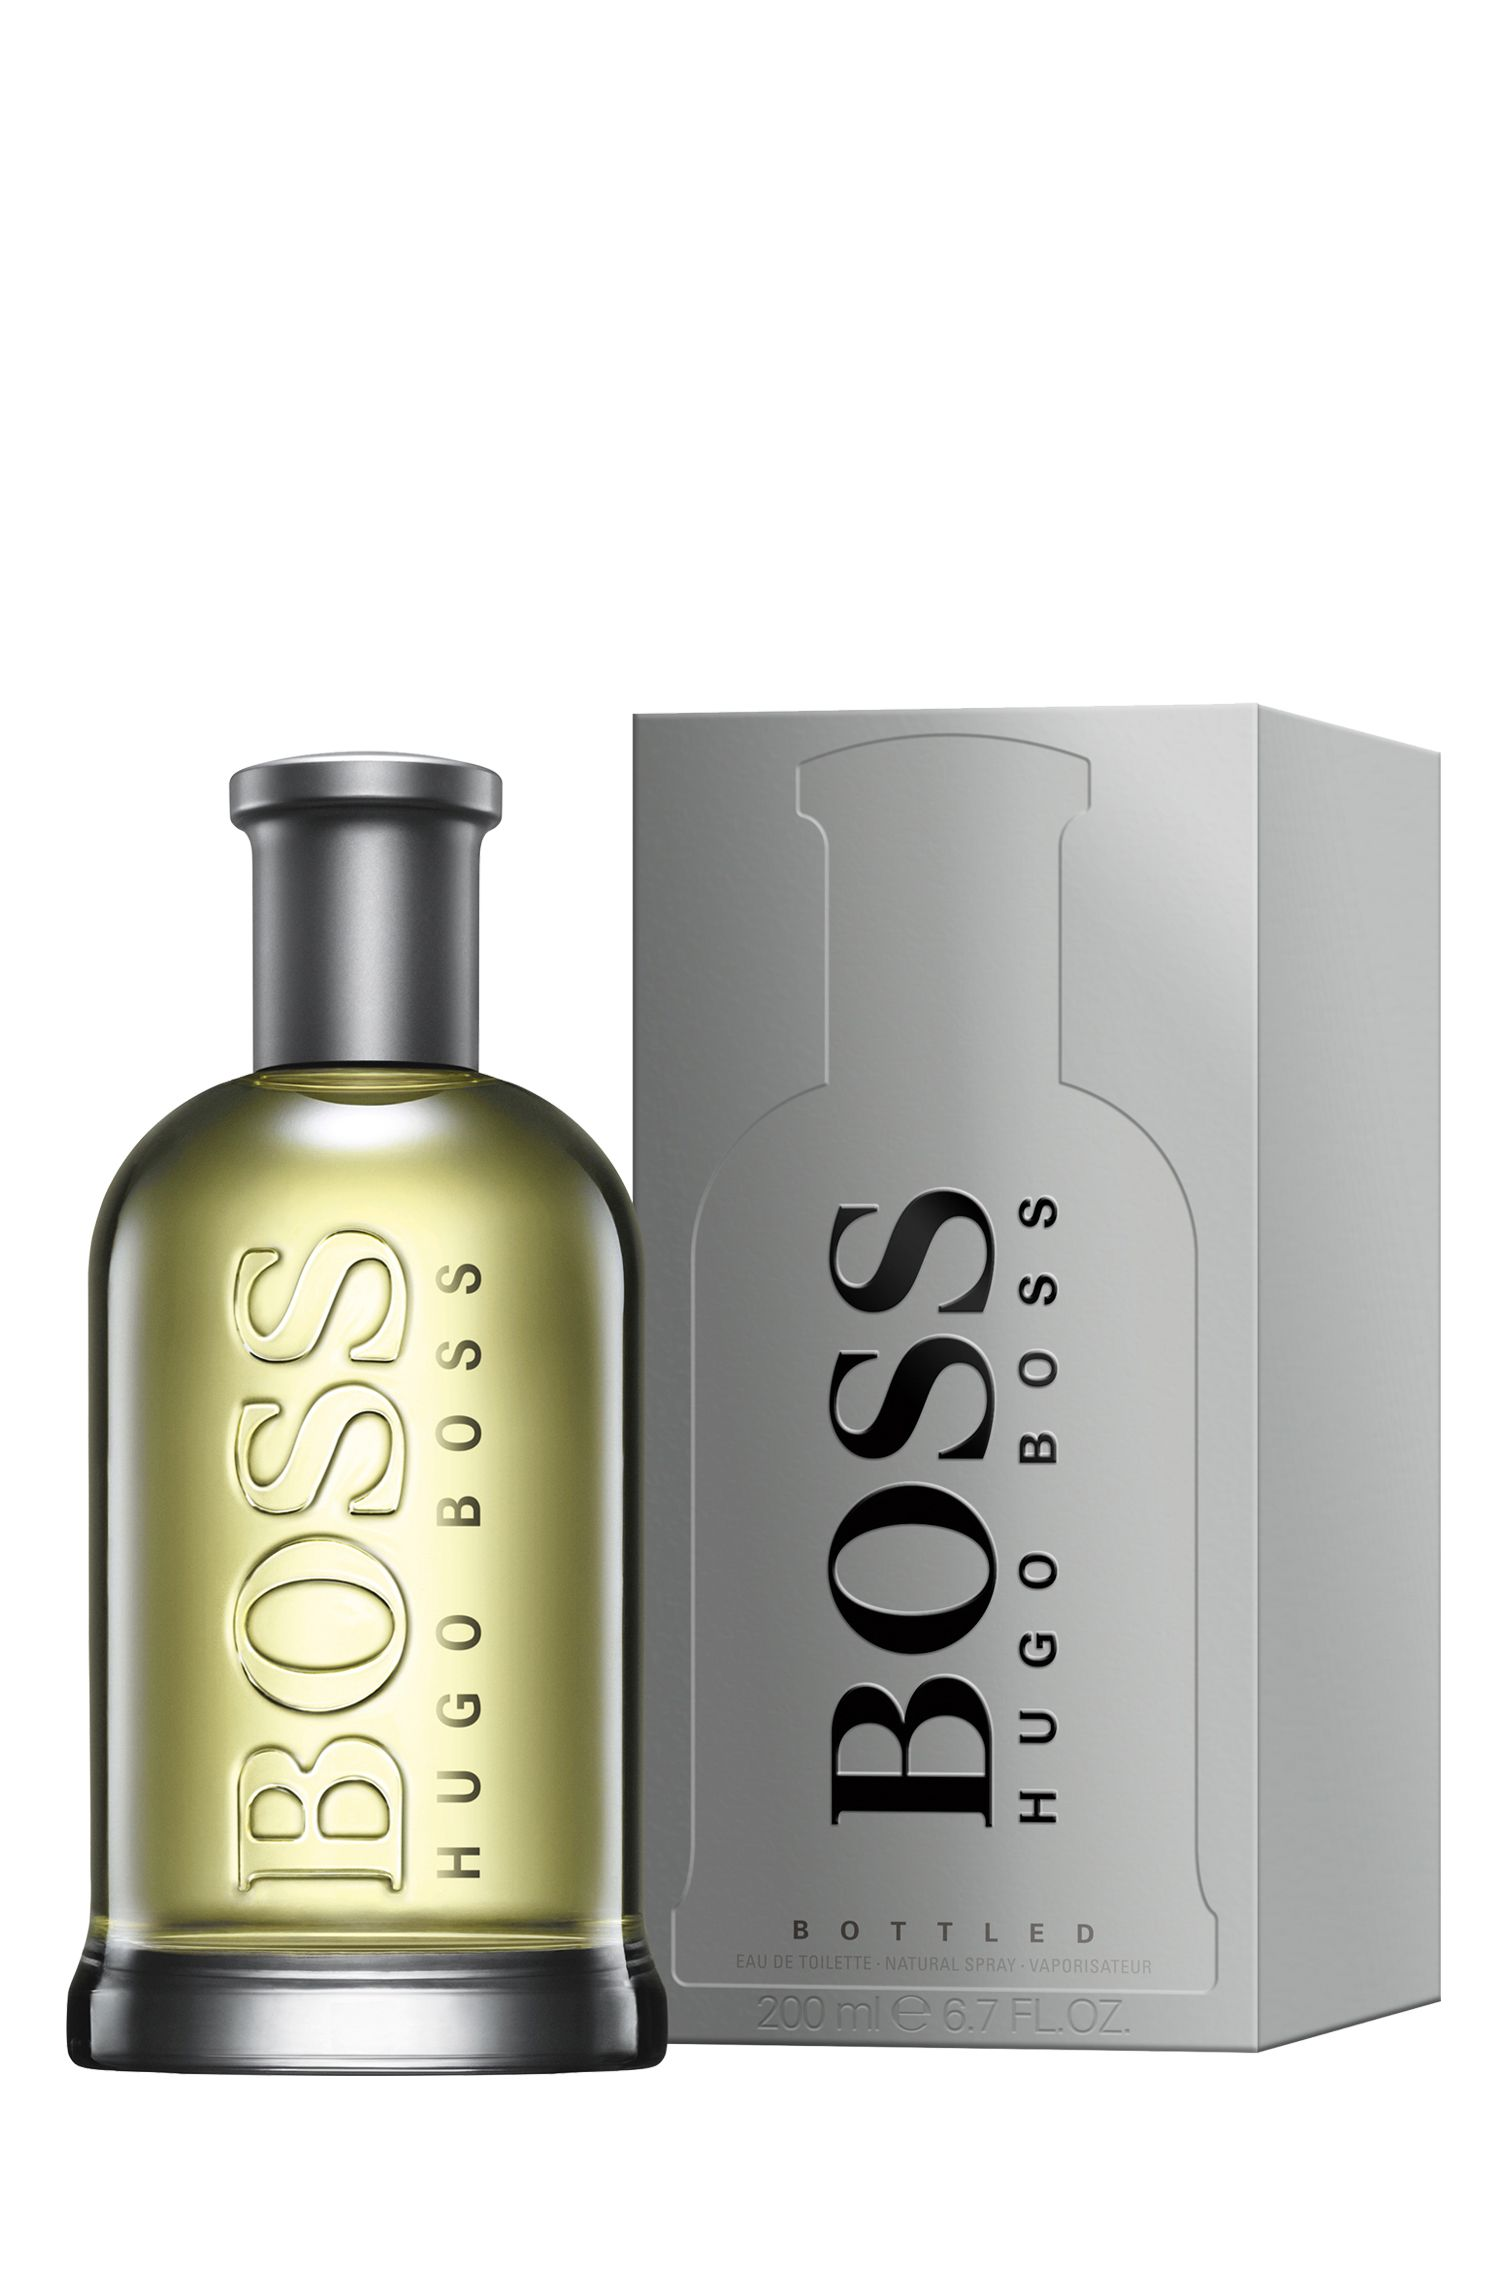 BOSS Bottled eau de toilette 200 ml, Assorted-Pre-Pack